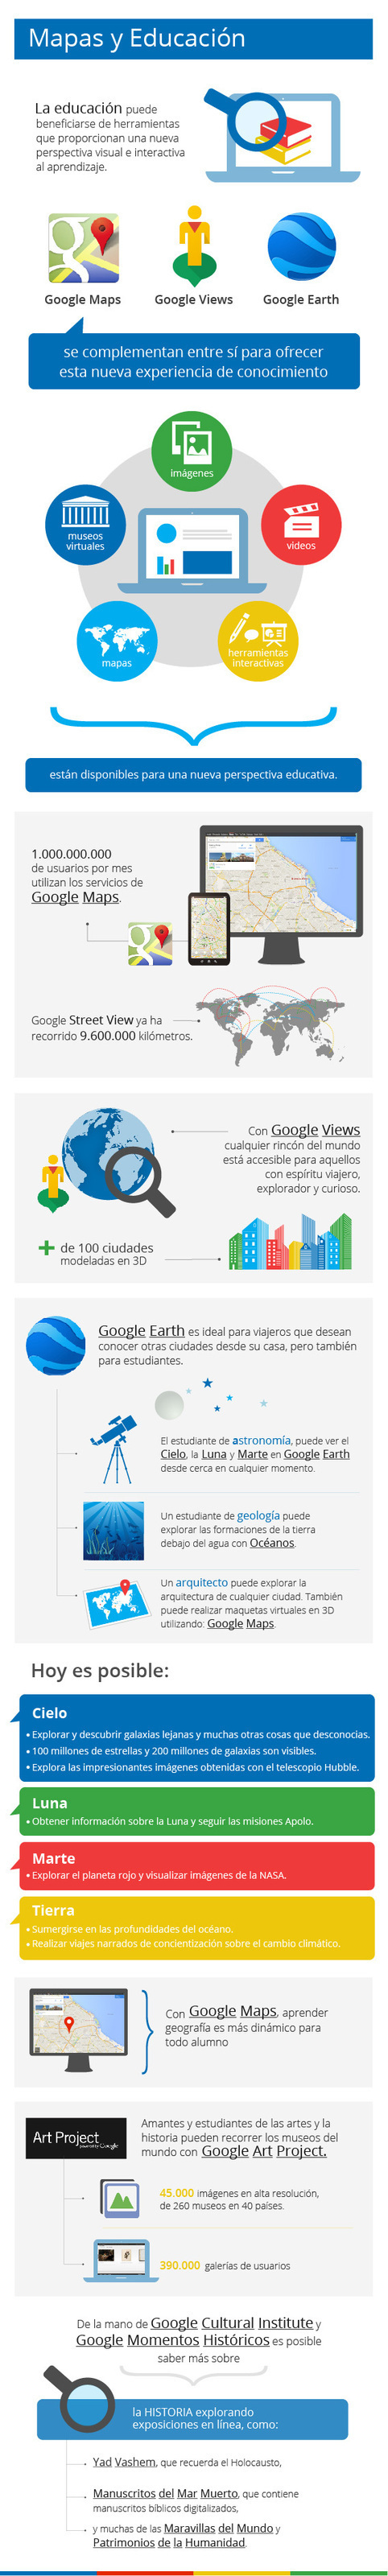 ¿Cómo está transformando Internet (y Google) el sistema educativo?